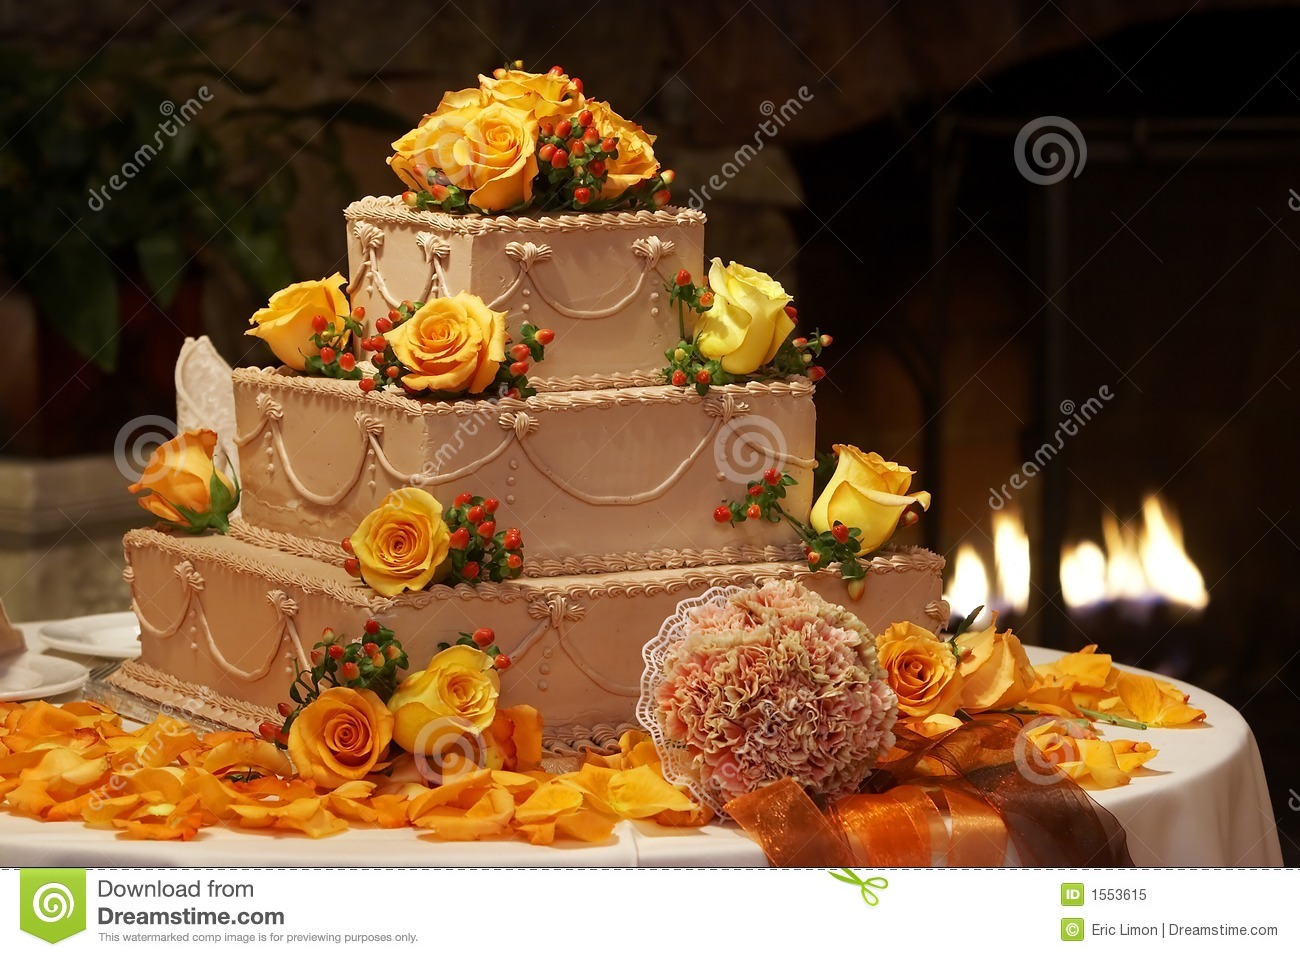 Fancy Wedding Cake Royalty Free Stock Photo Image 1553615